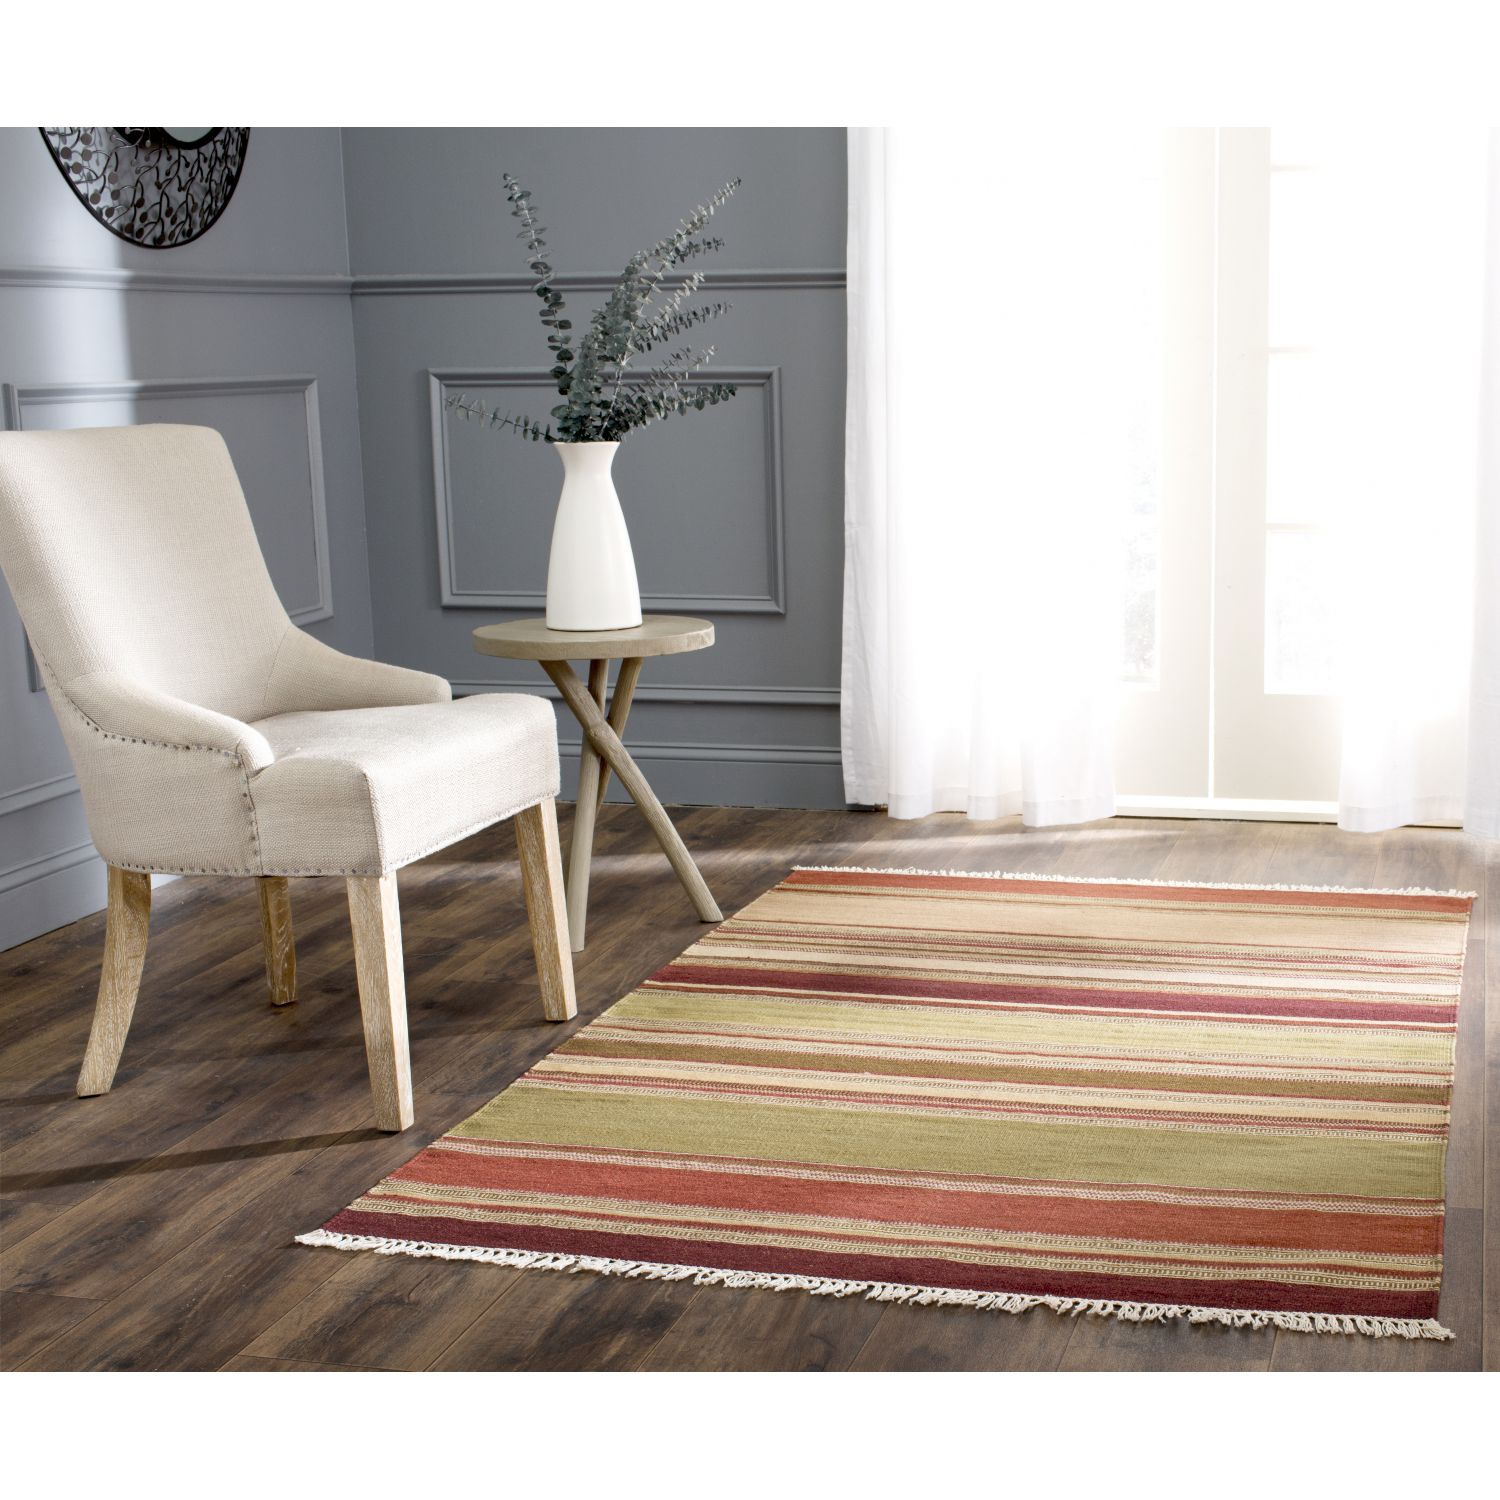 home24 Teppich Dalat Striped Kilim